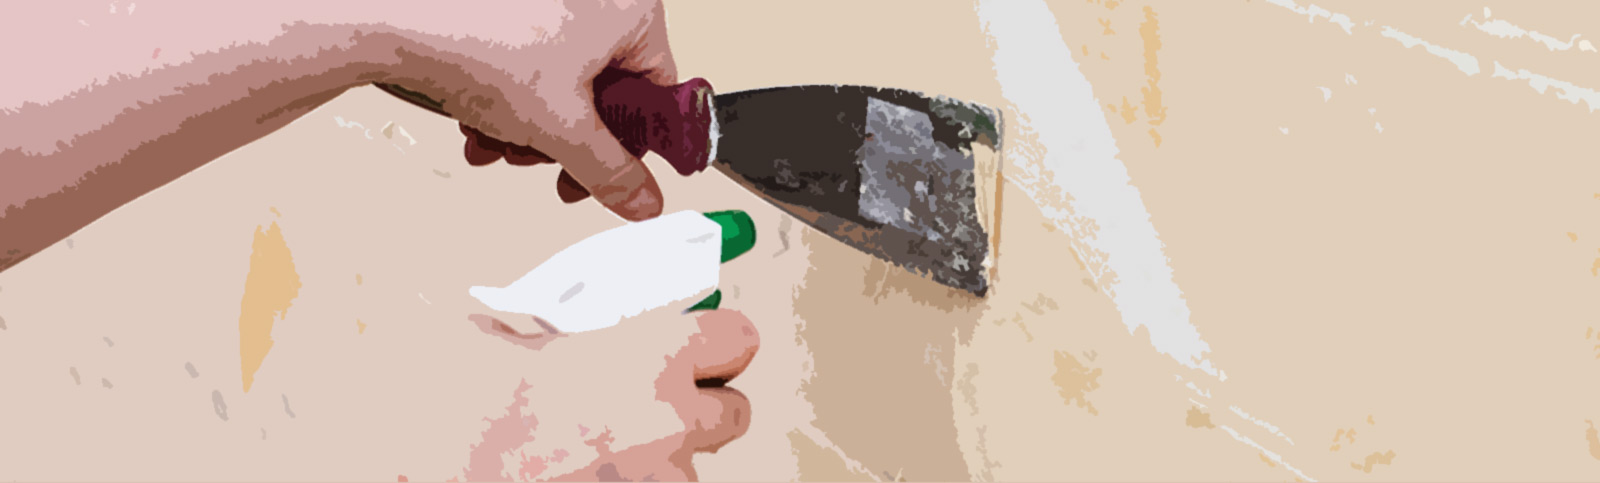 How to Remove Wallpaper With No Sweat